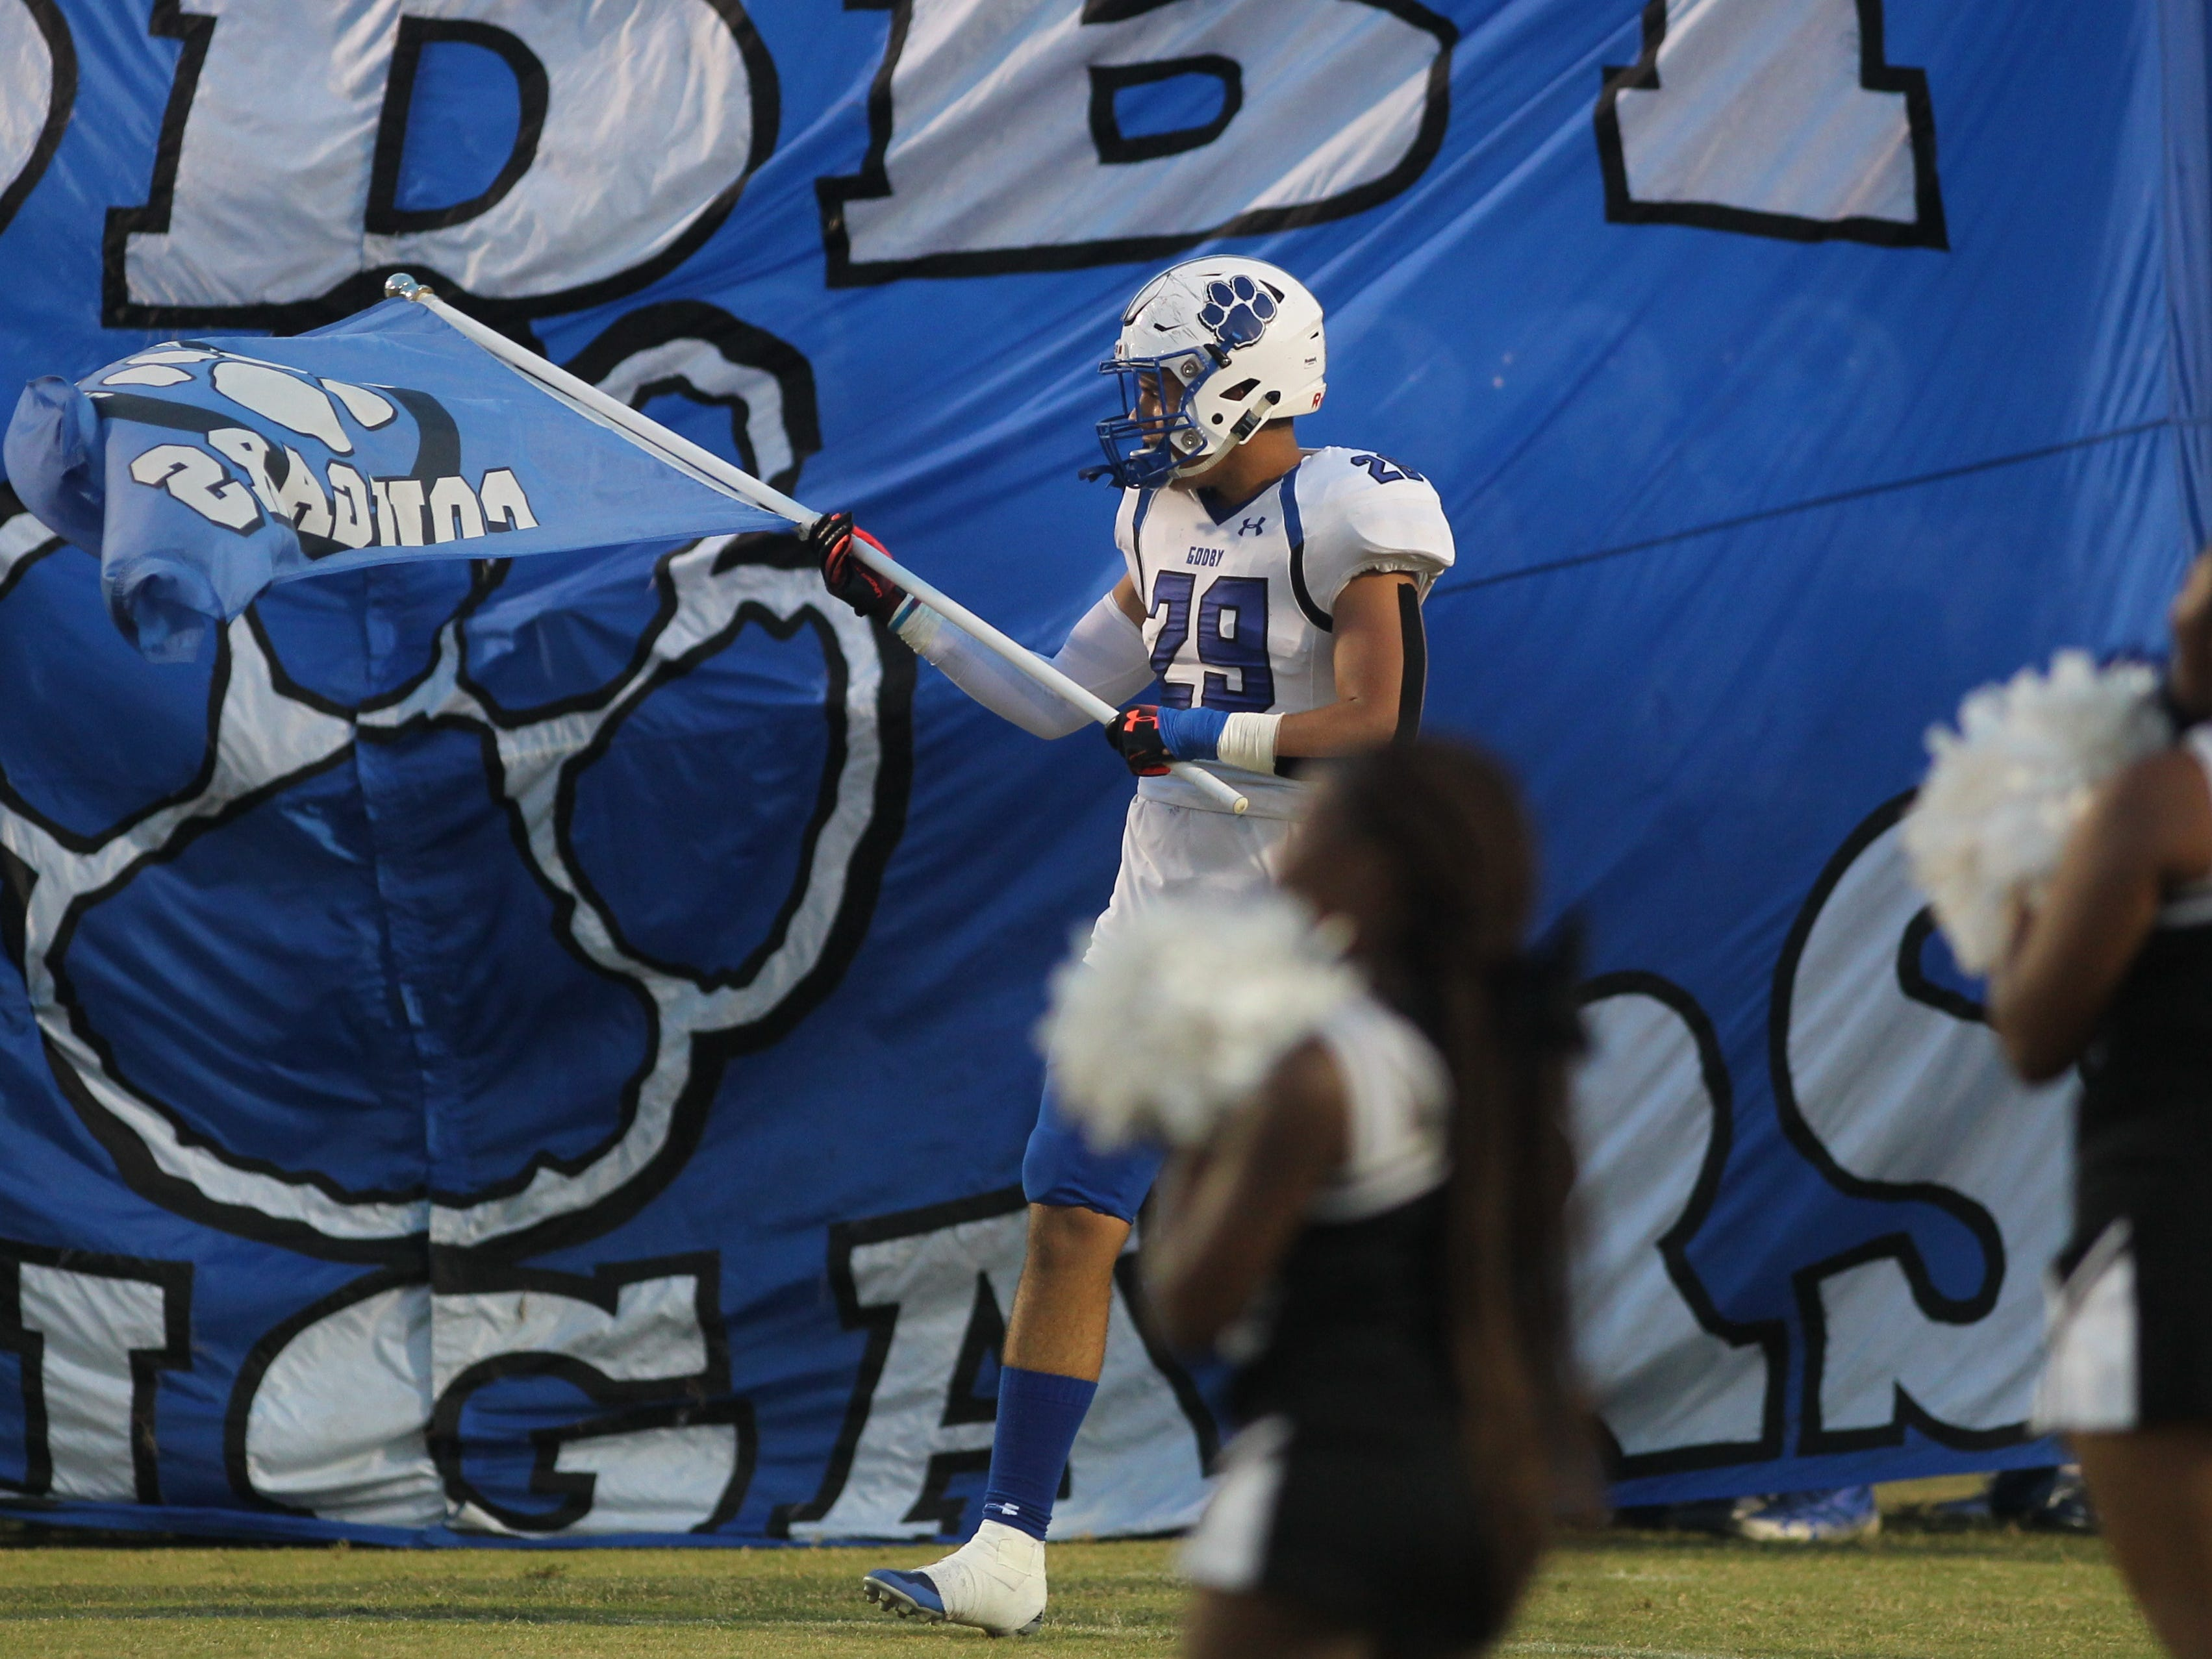 Godby's Kyler Laing waves a flag before leading his team onto the field as Godby beat Wakulla 37-13 on Friday night.